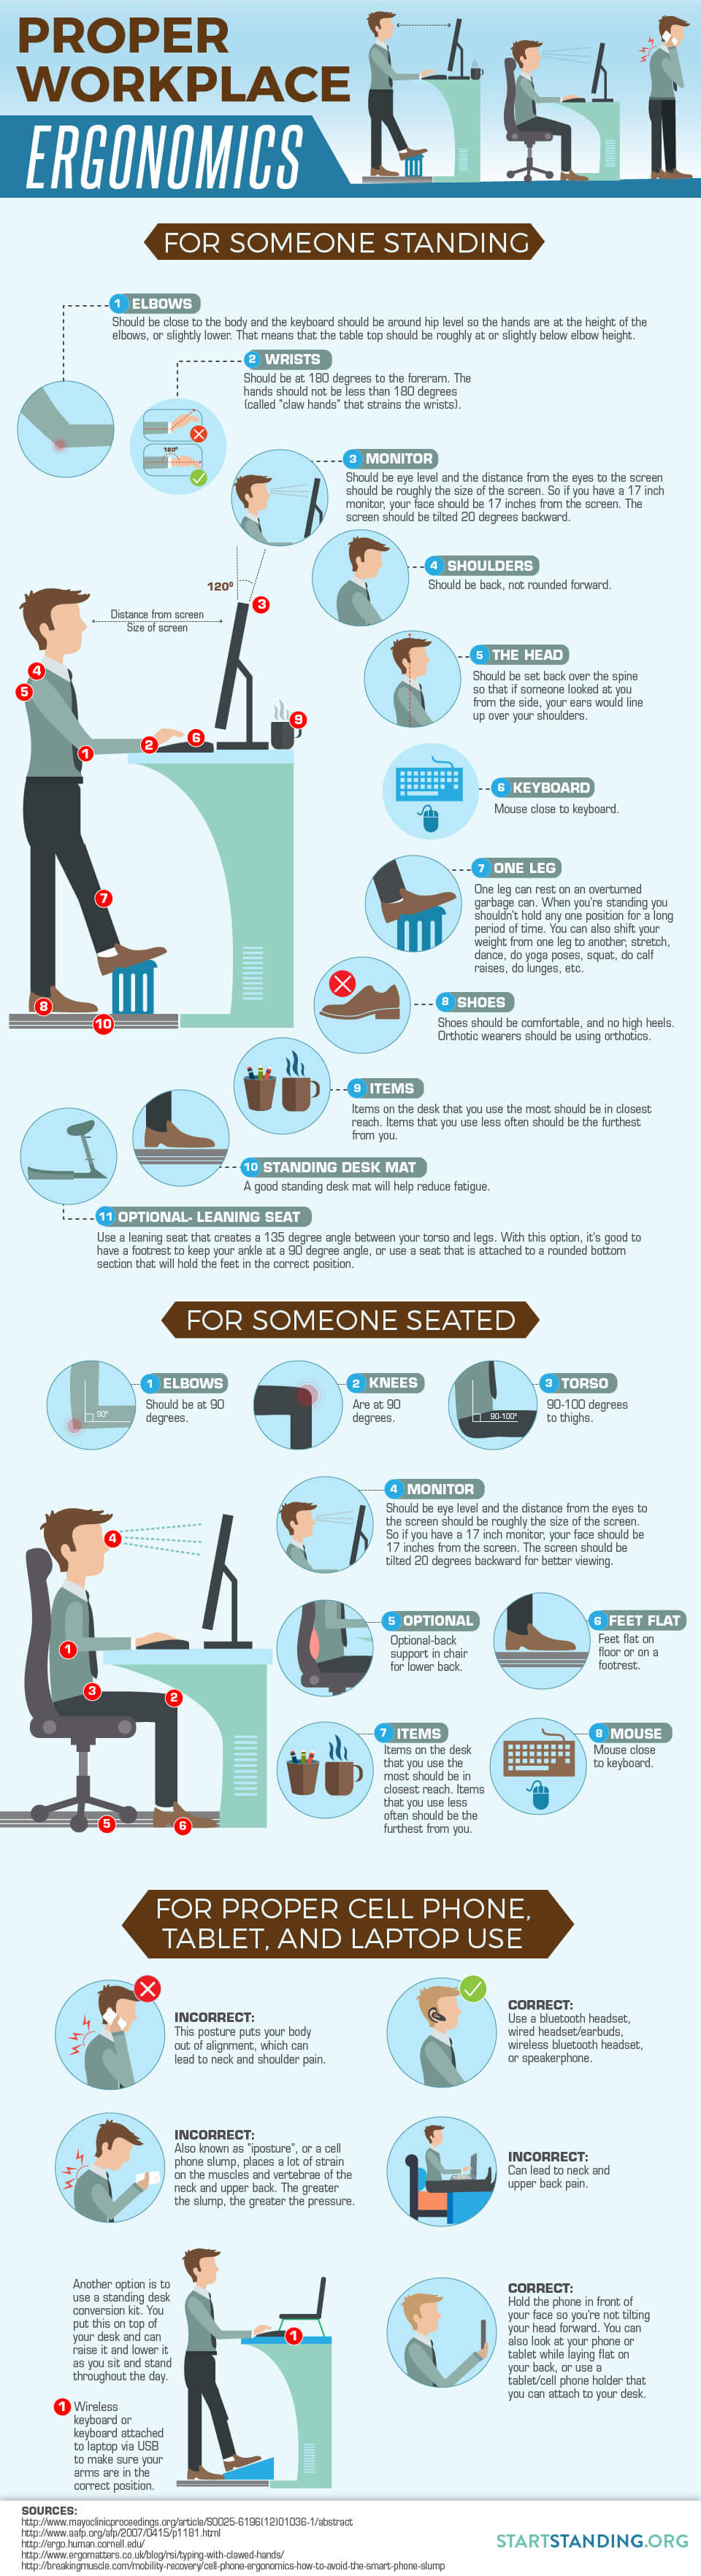 office chair you sit backwards swivel bath guide to proper sitting and standing desk ergonomics start with extended periods of check out our info graphic below where we detail for talking on the phone